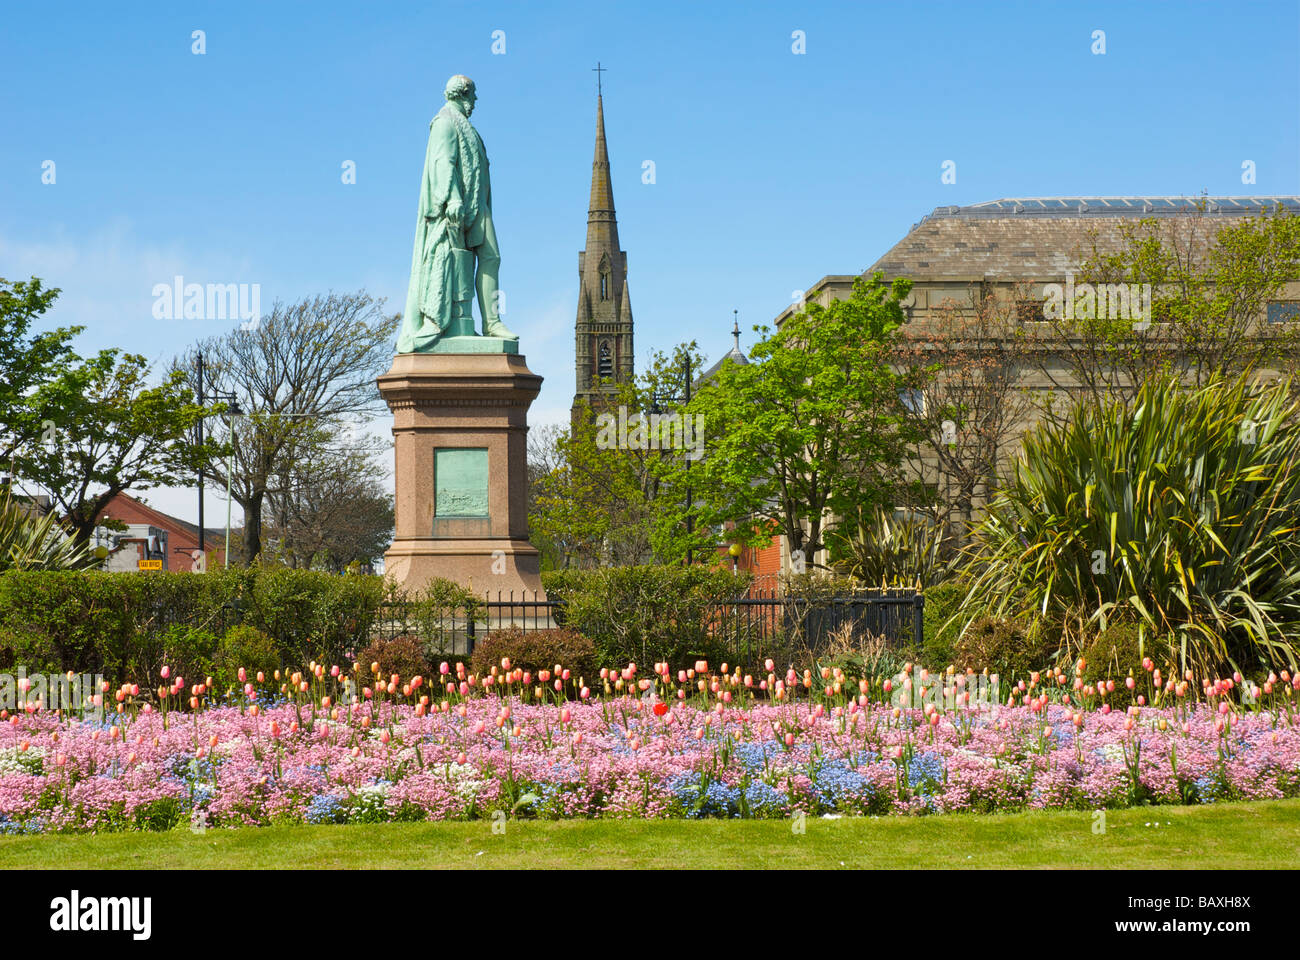 Statue of Sir James Ramsden in Ramsden Square, Barrow-in-Furness, Cumbria, England UK Stock Photo